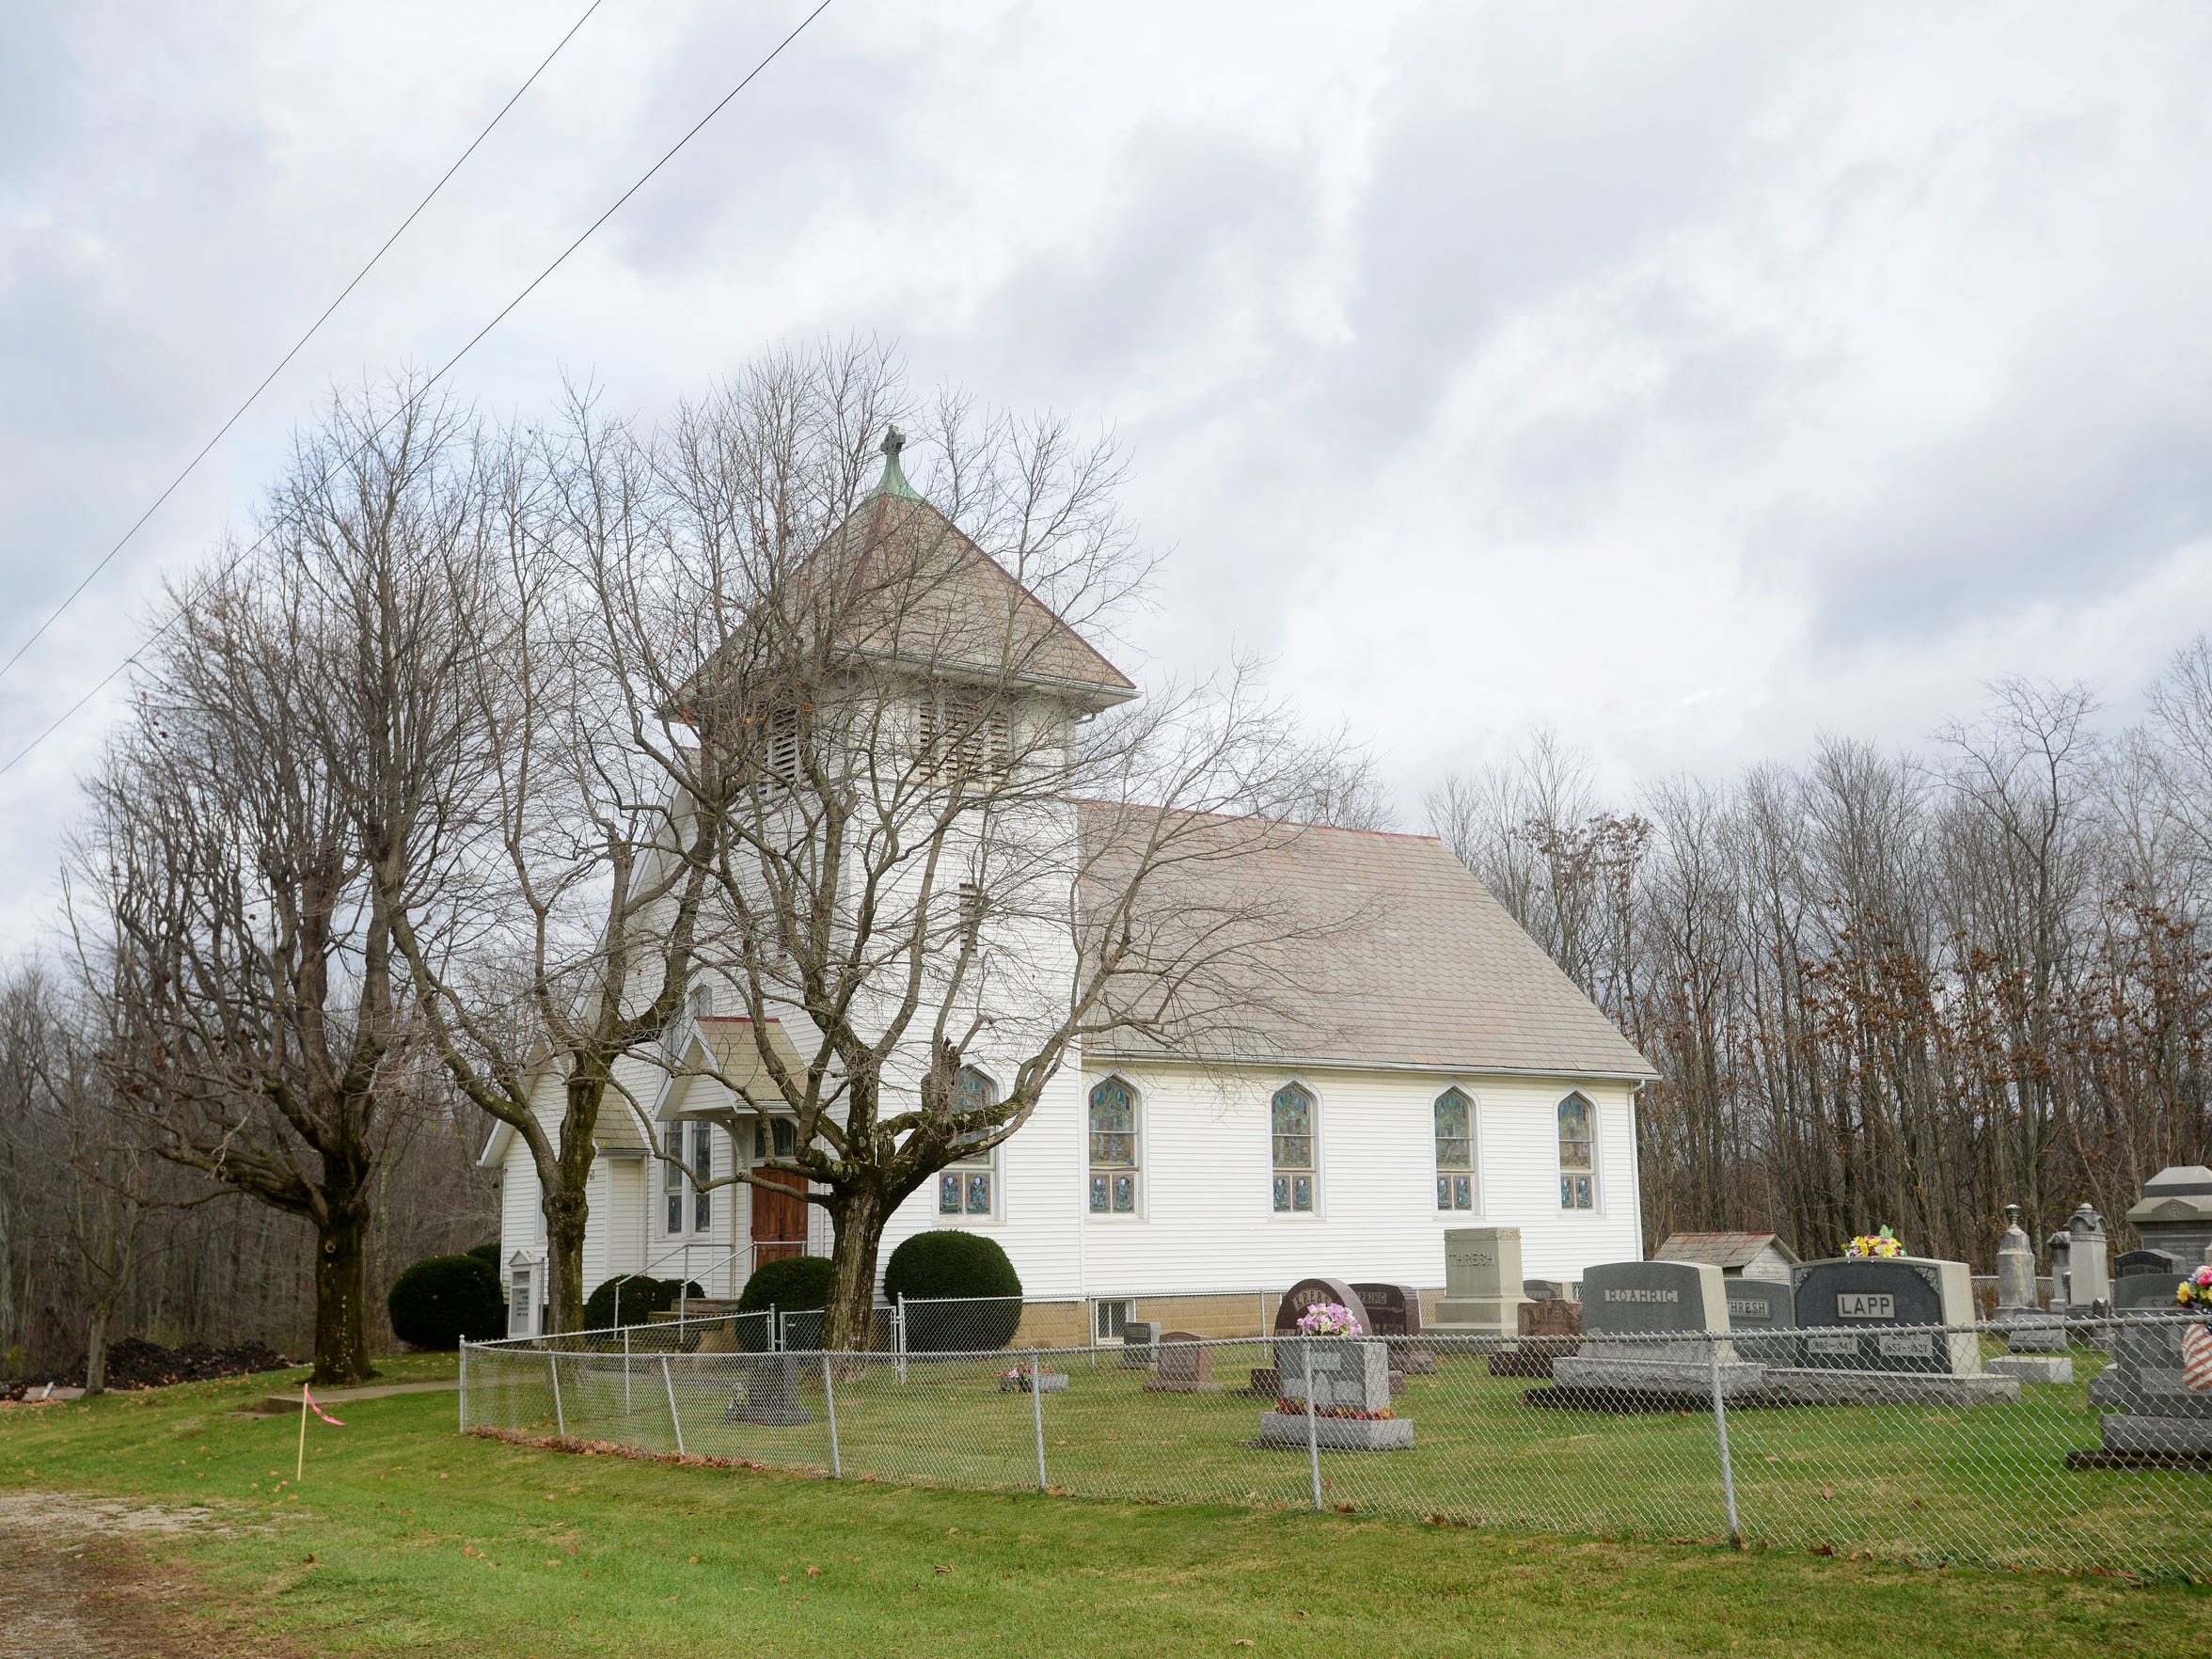 Zion Lutheran Church was built in 1912 on Ferncliff Road north of Adamsville. It was the third church on the site.